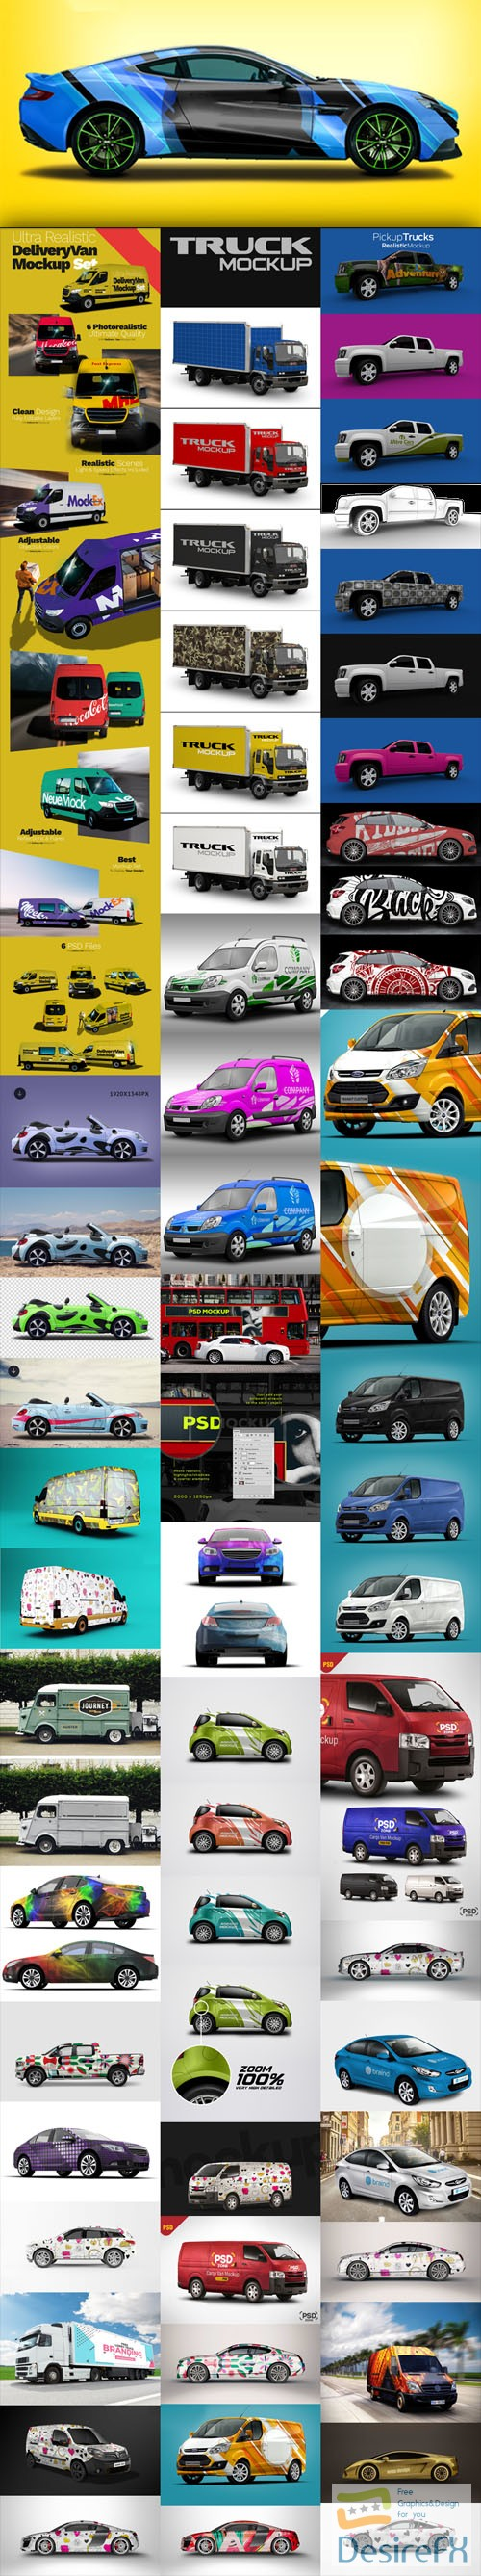 mock-up - Huge Pack of Realistic High Quality Cars & Vehicles PSD Mockups